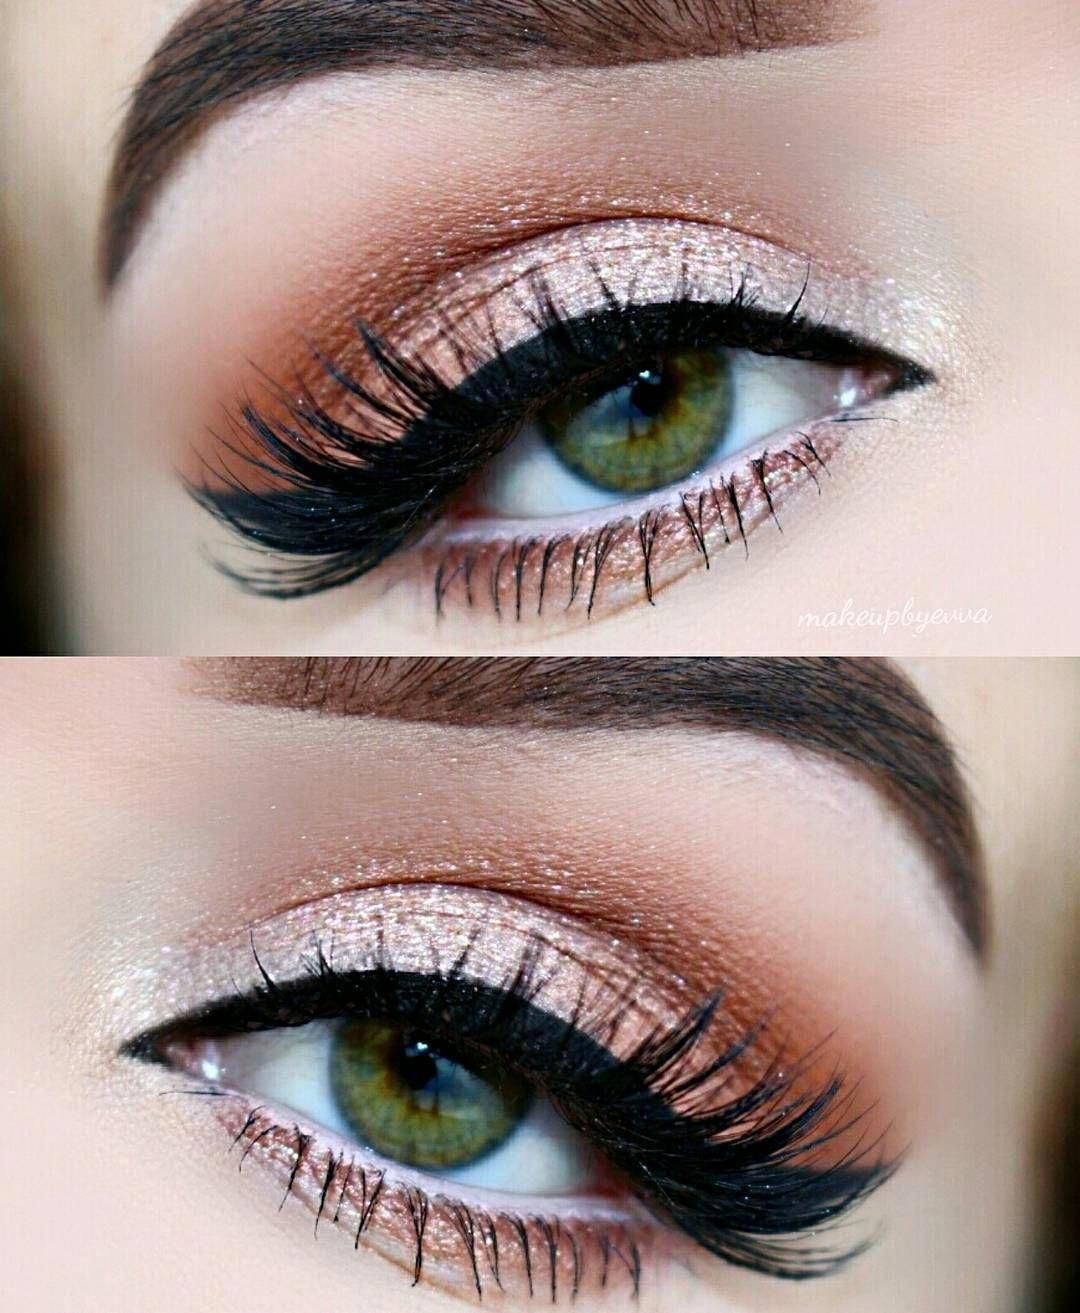 peach crease + light lid, winged liner | shimmery eye makeup for valentines @mak... ,  #crease #Eye #lid #LIGHT #liner #mak #Makeup #Peach #peacheyemakeup #Shimmery #Valentines #winged